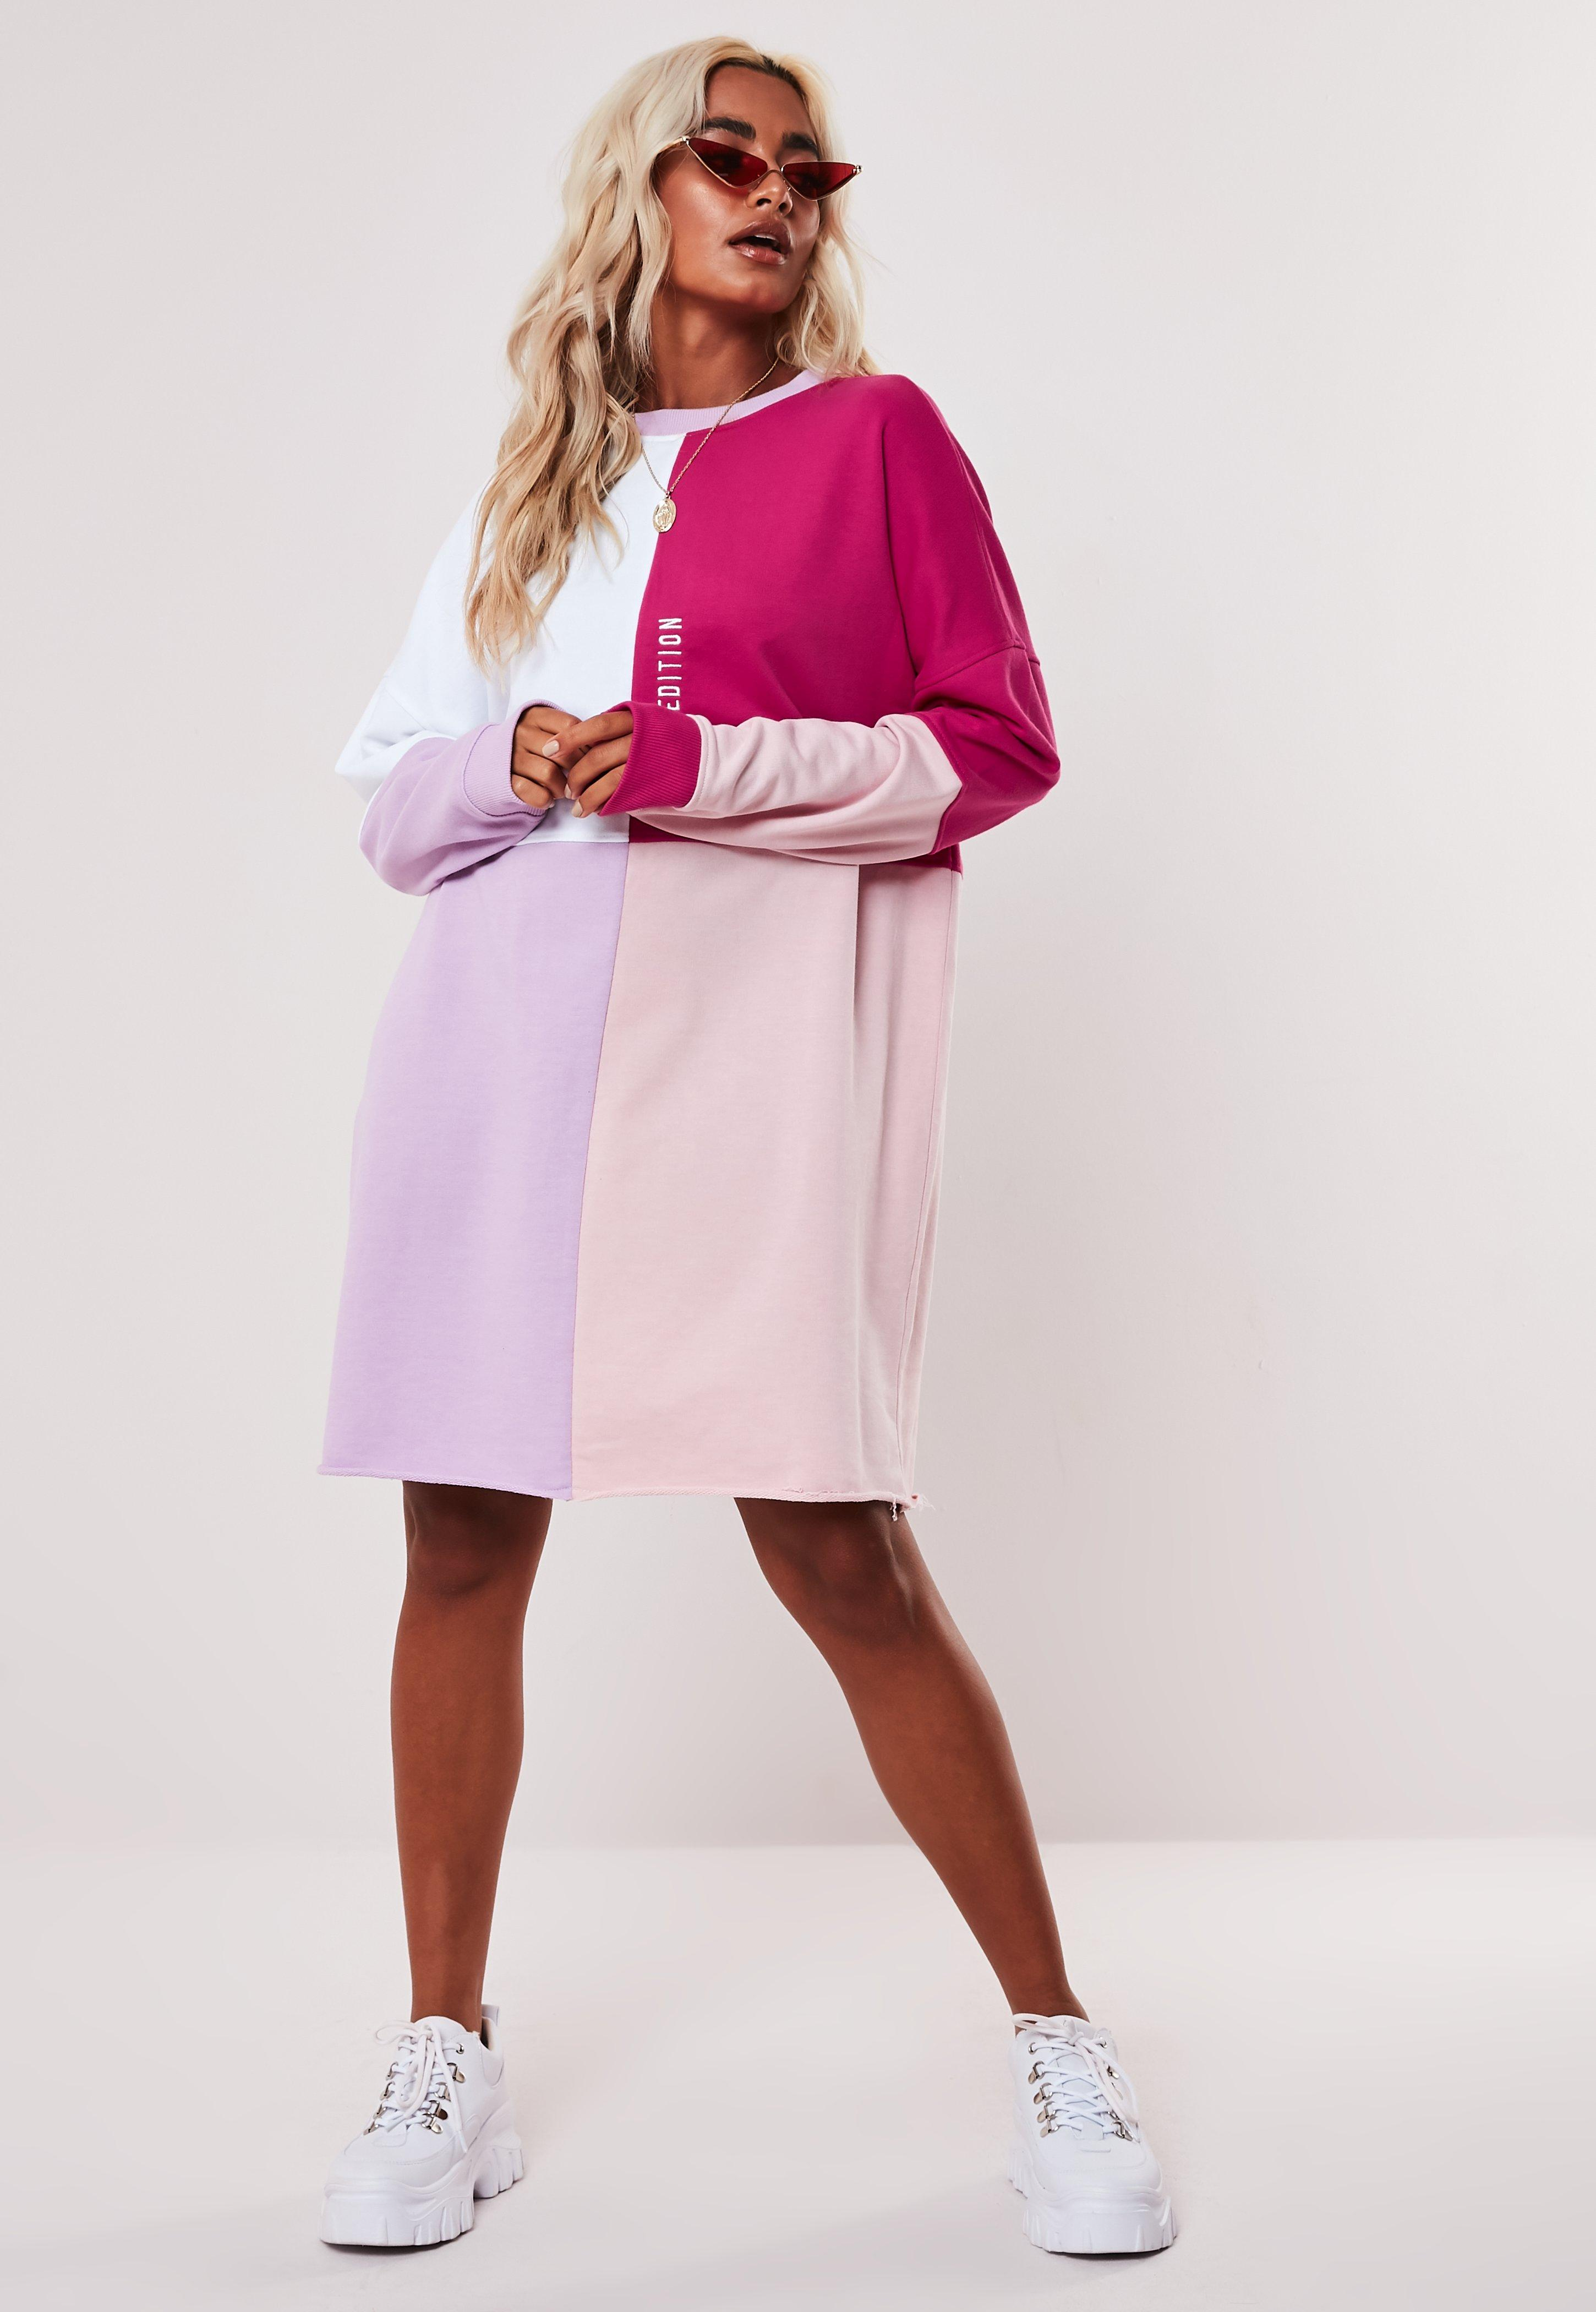 65207543ec4 Sweater Dresses